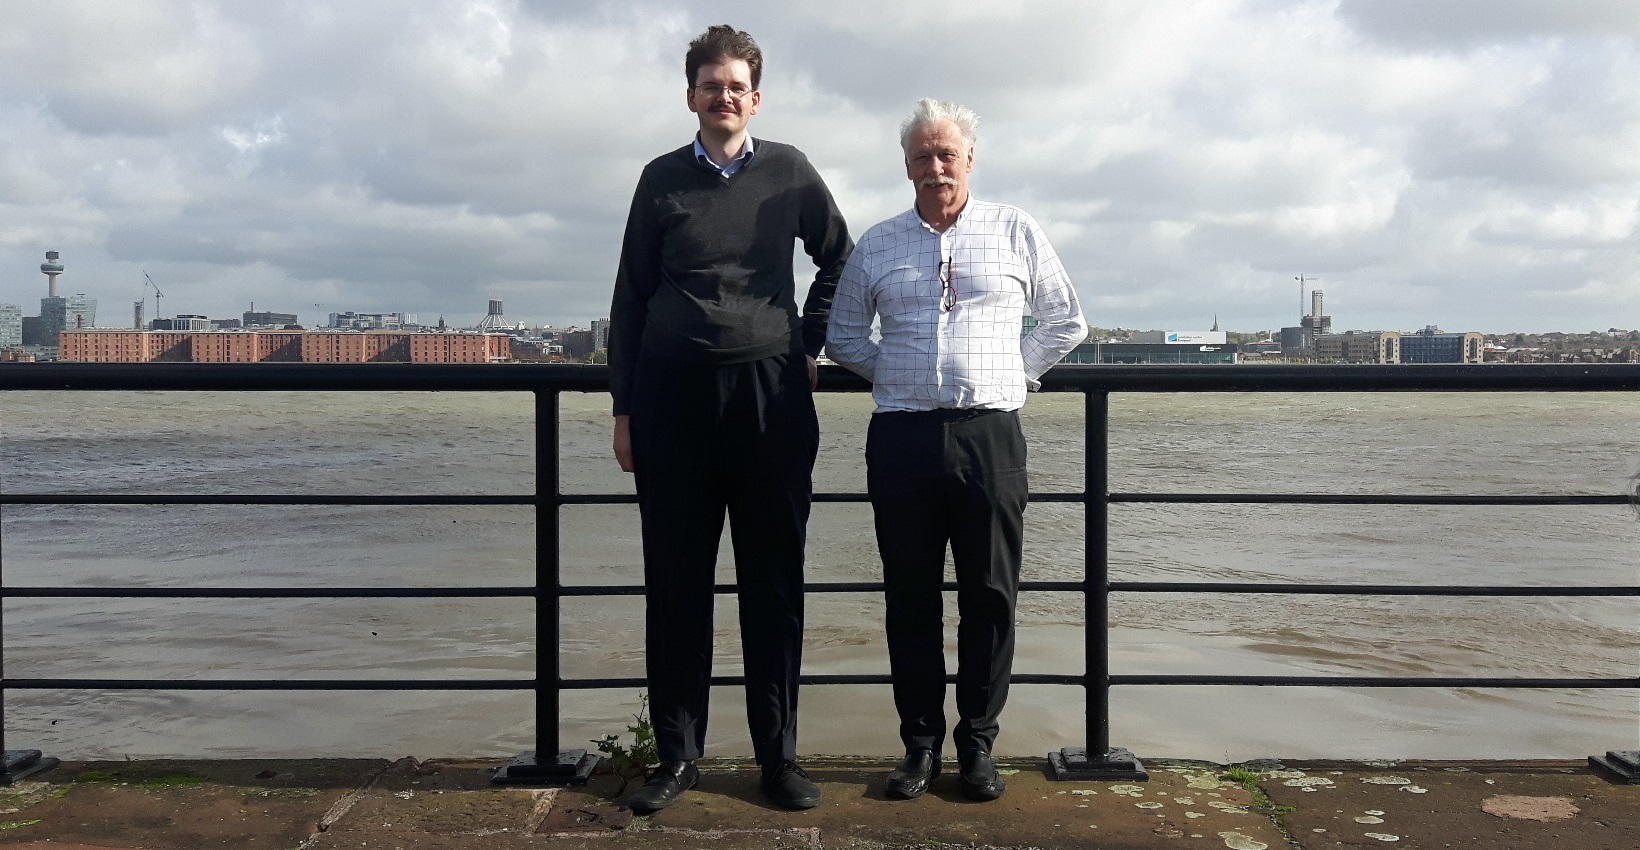 HMRC's Owen with Rick from Autism Together